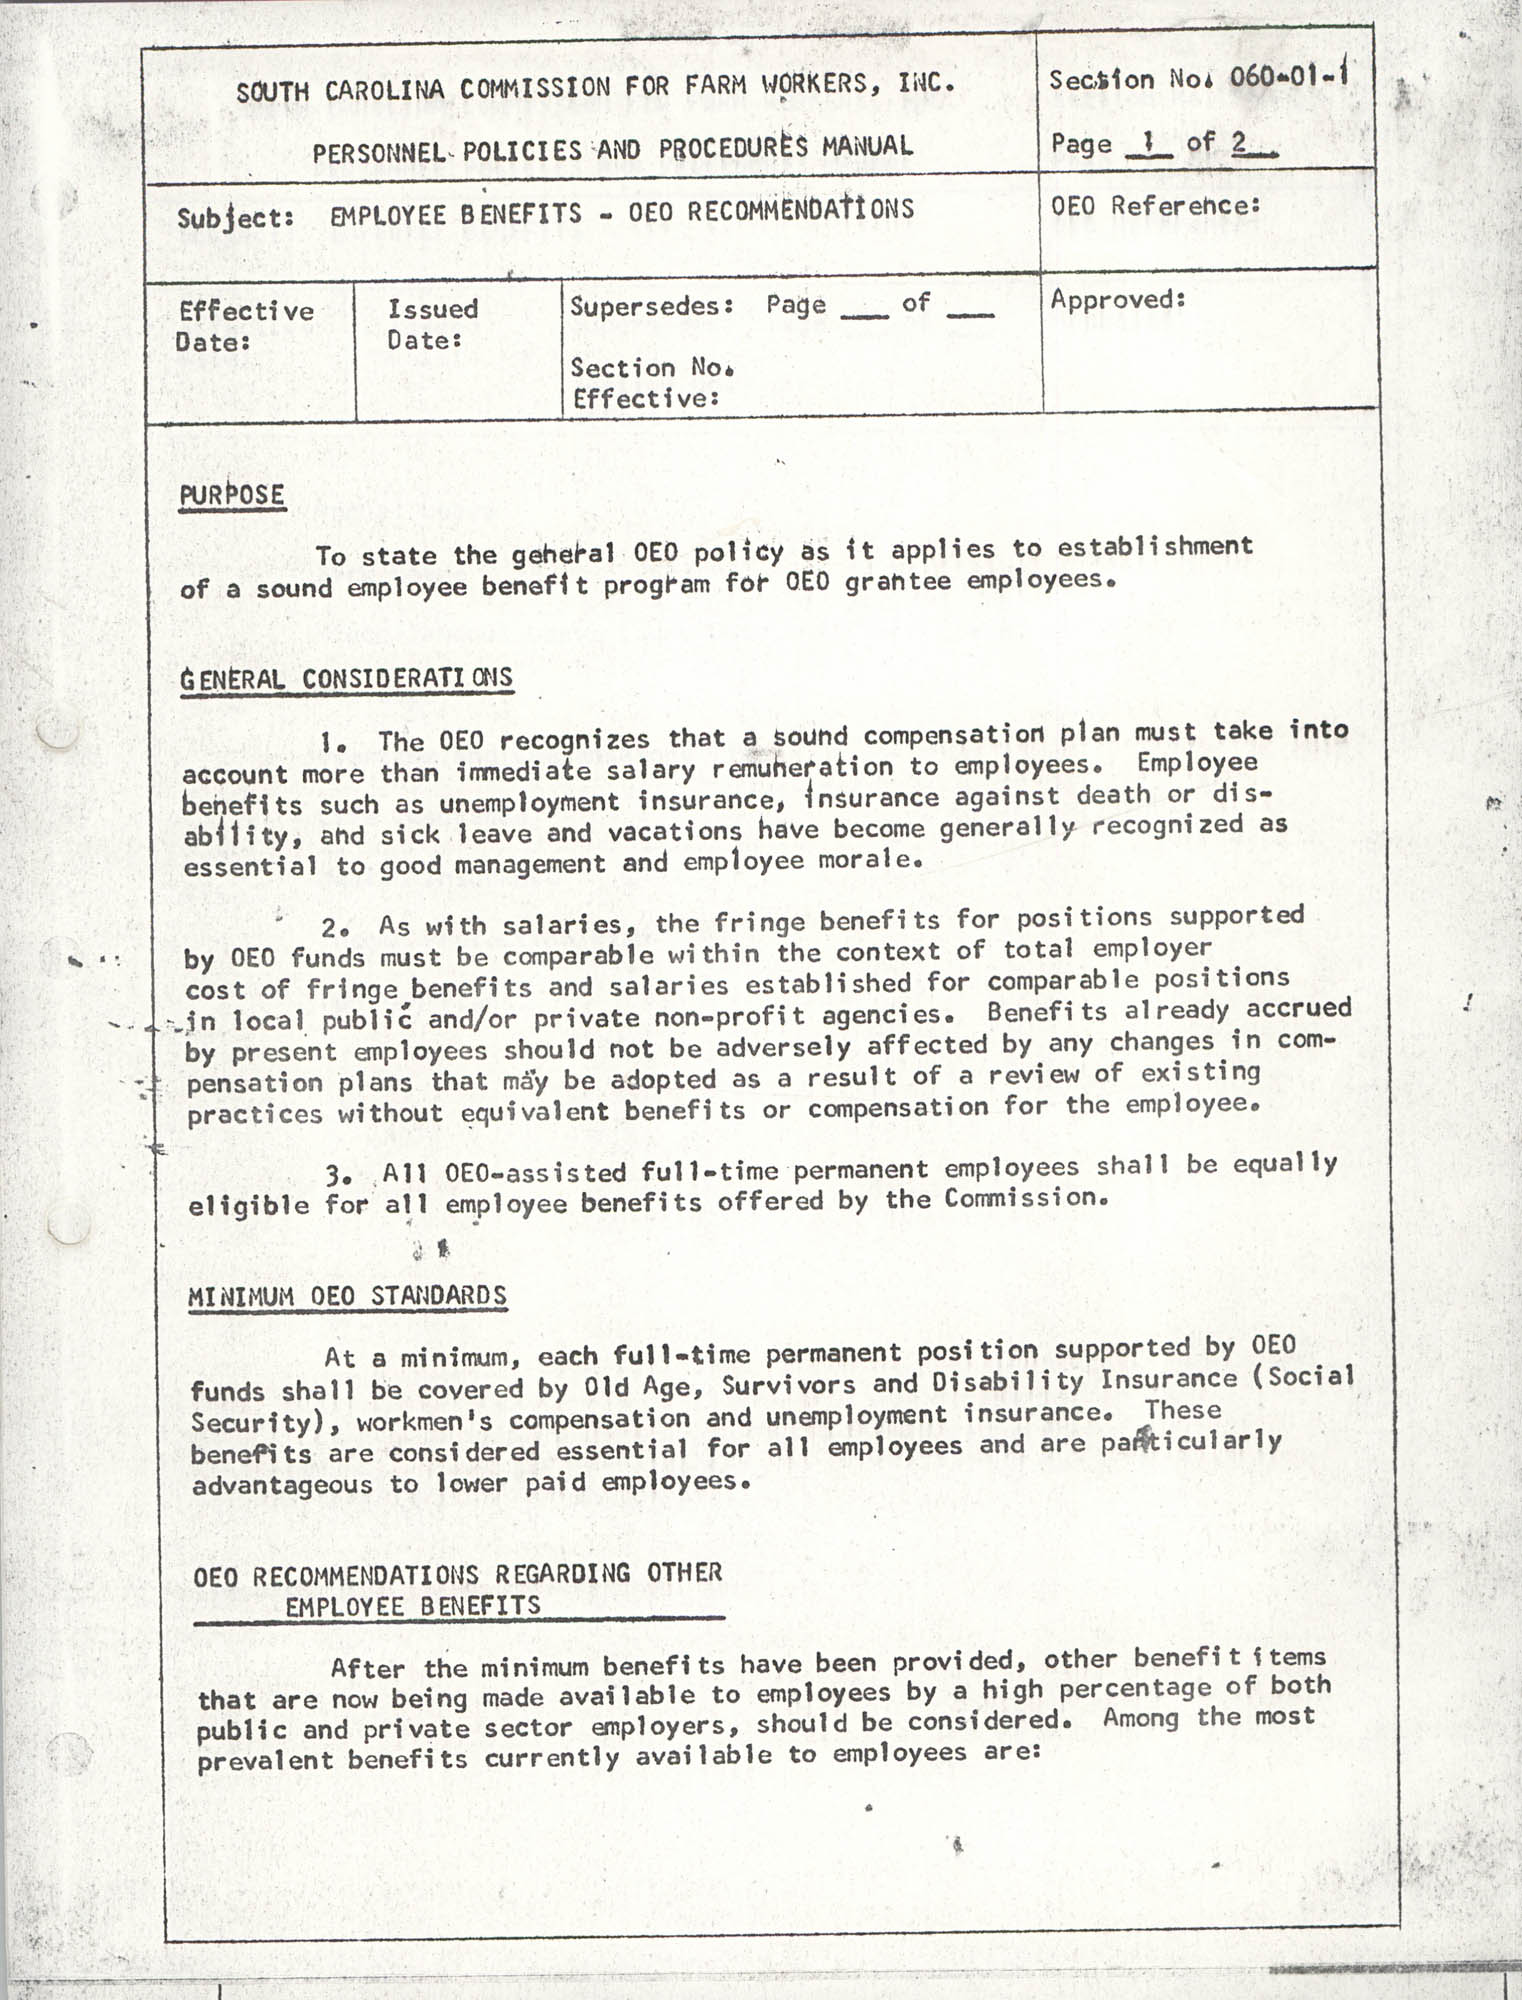 Personnel Policies and Procedures Manual, Section No. 060-01-1, Page 2